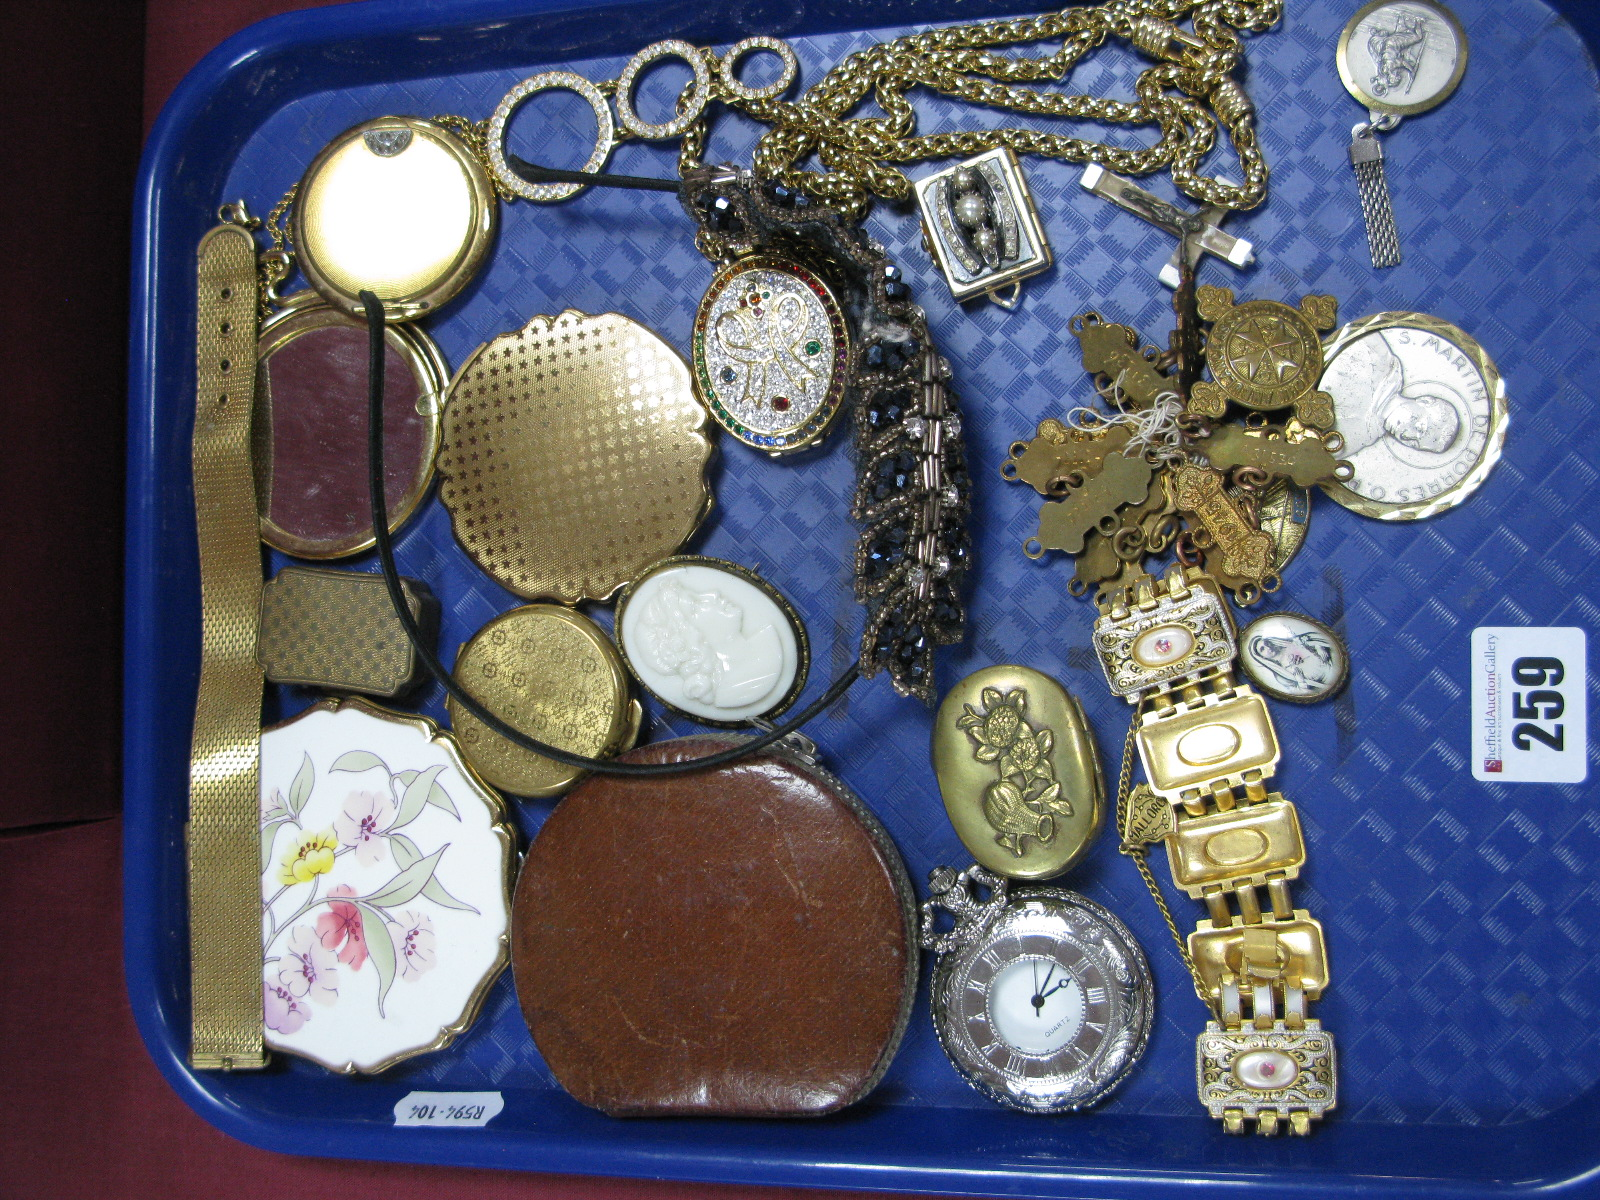 Lot 259 - Ladies Compact and Pill Boxes, a rectangular ornate panel style bracelet, a quartz pocketwatch, a